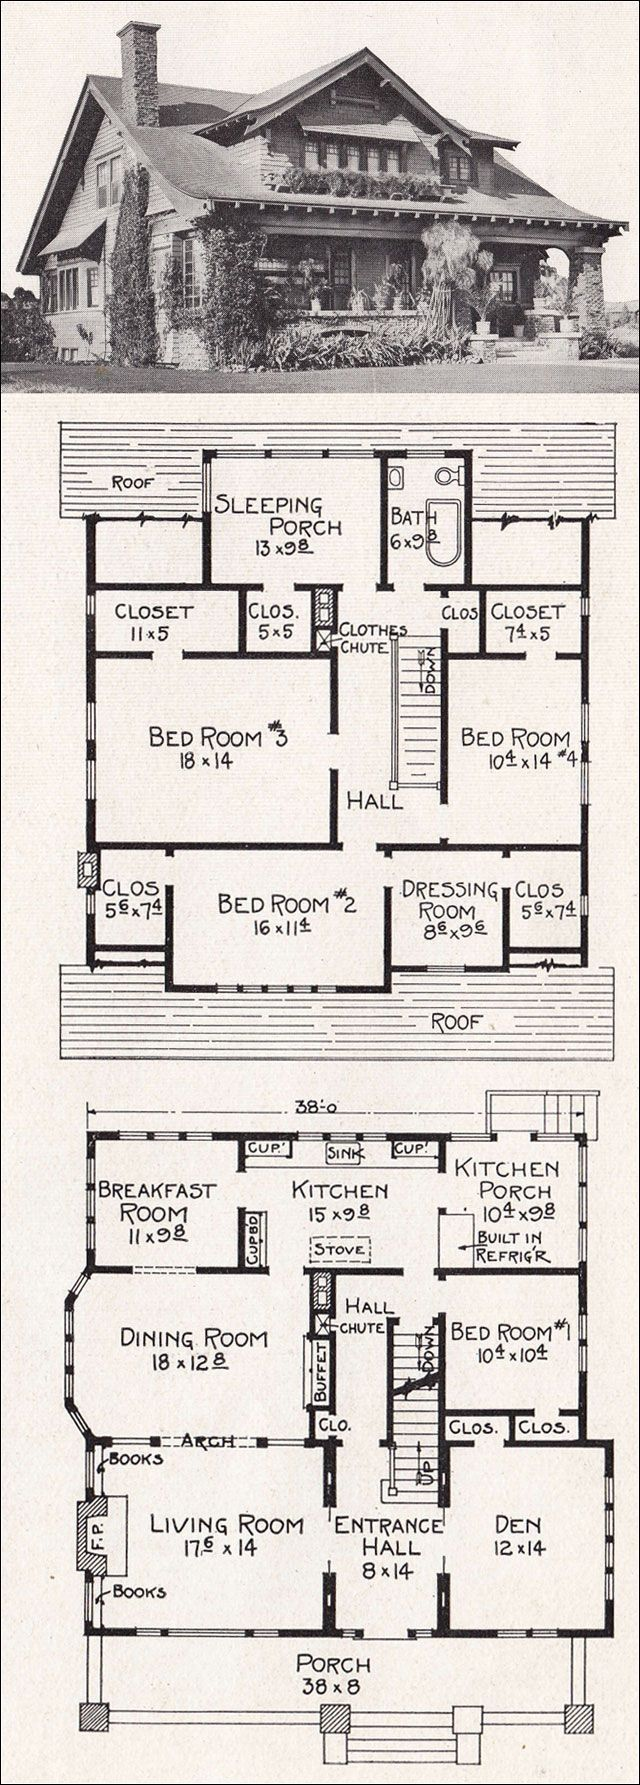 Vintage House Plan That Can Easily Be Conformed To Our Modern Day Life Style Add Some Bathrooms Vintage House Plans Craftsman House Plans Bungalow House Plans